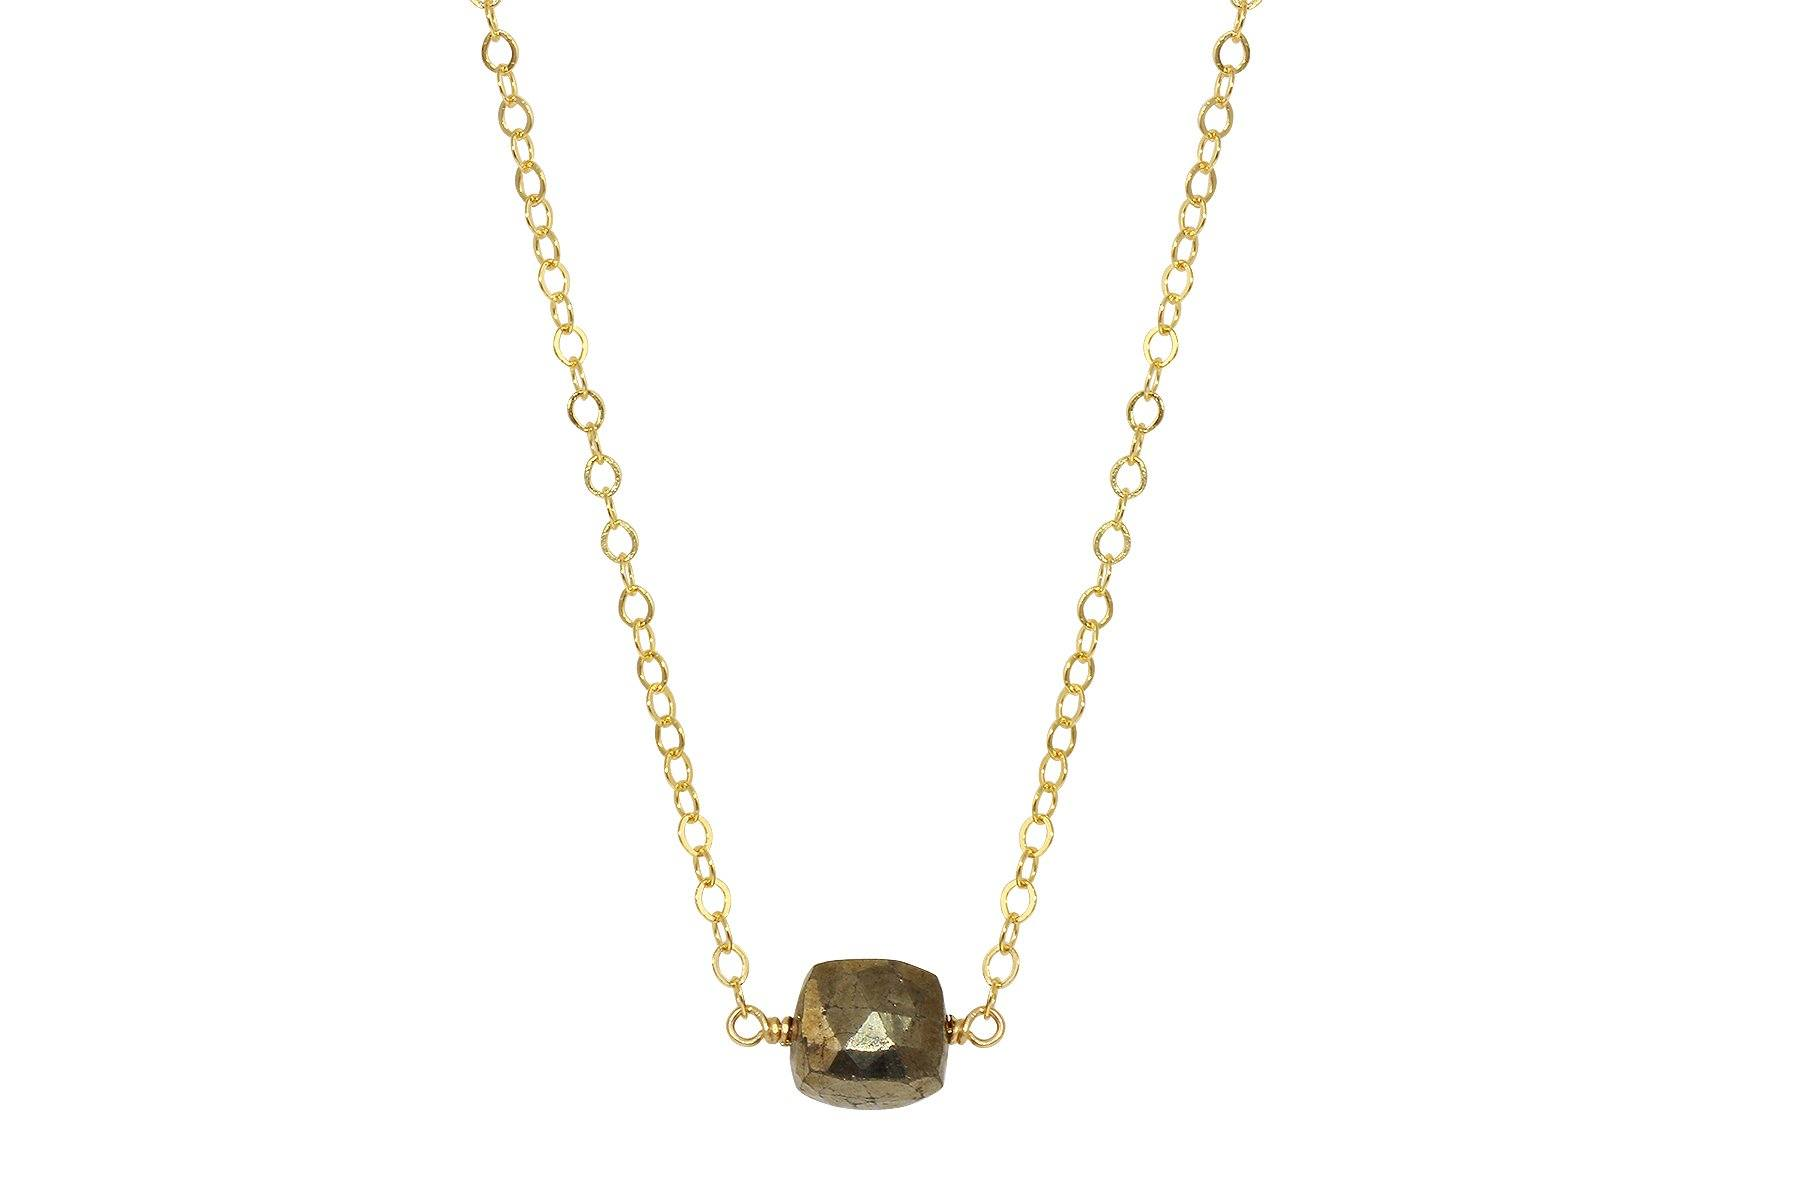 Pyrite cube little rock necklace - Amanda K Lockrow